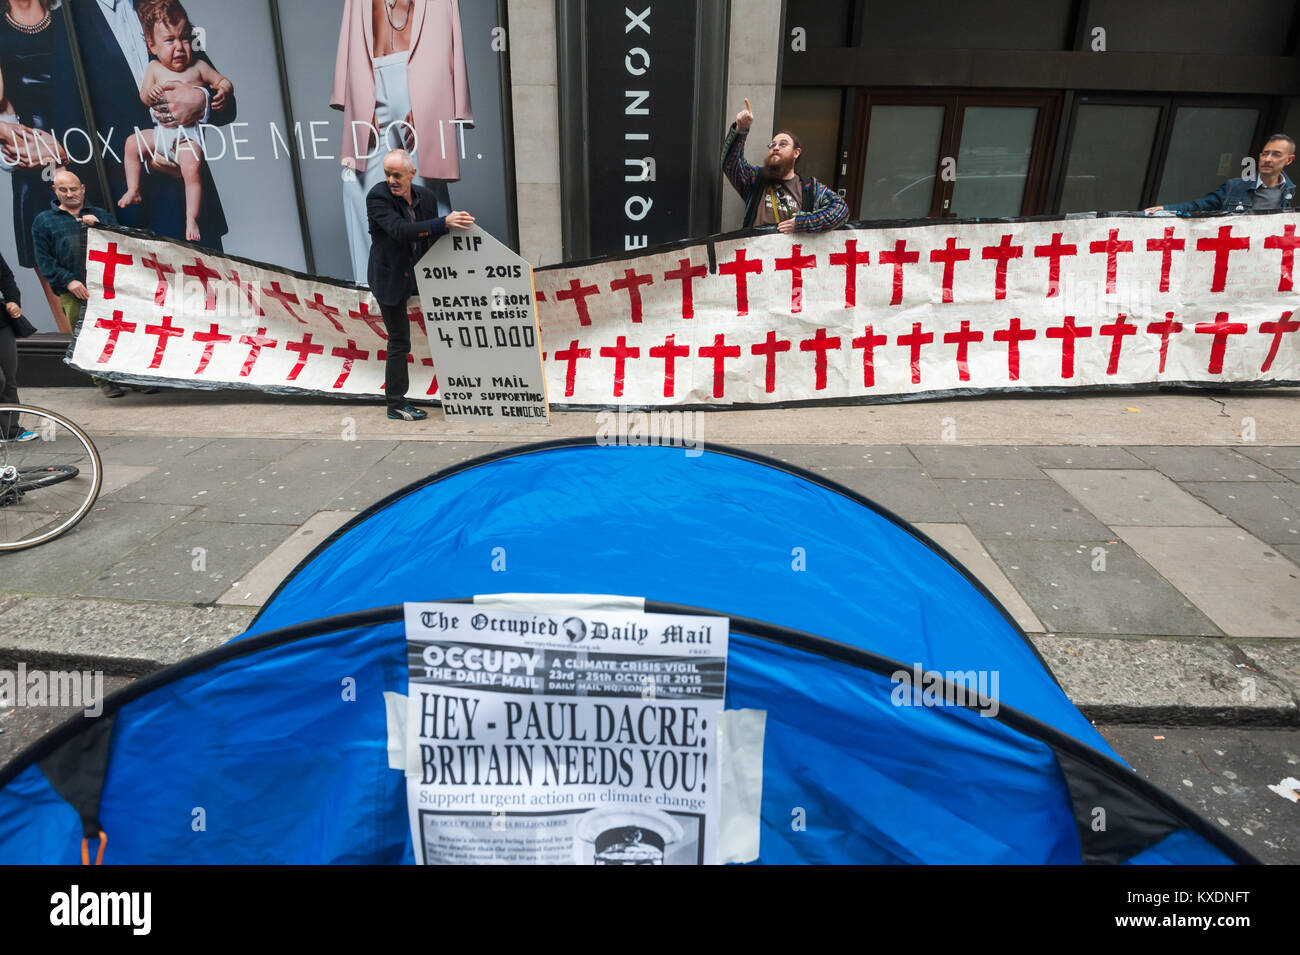 Protesters hold a tombstone and banner with crosses at the 48 hour protest by Occupy aimed at getting the Daily Stock Photo